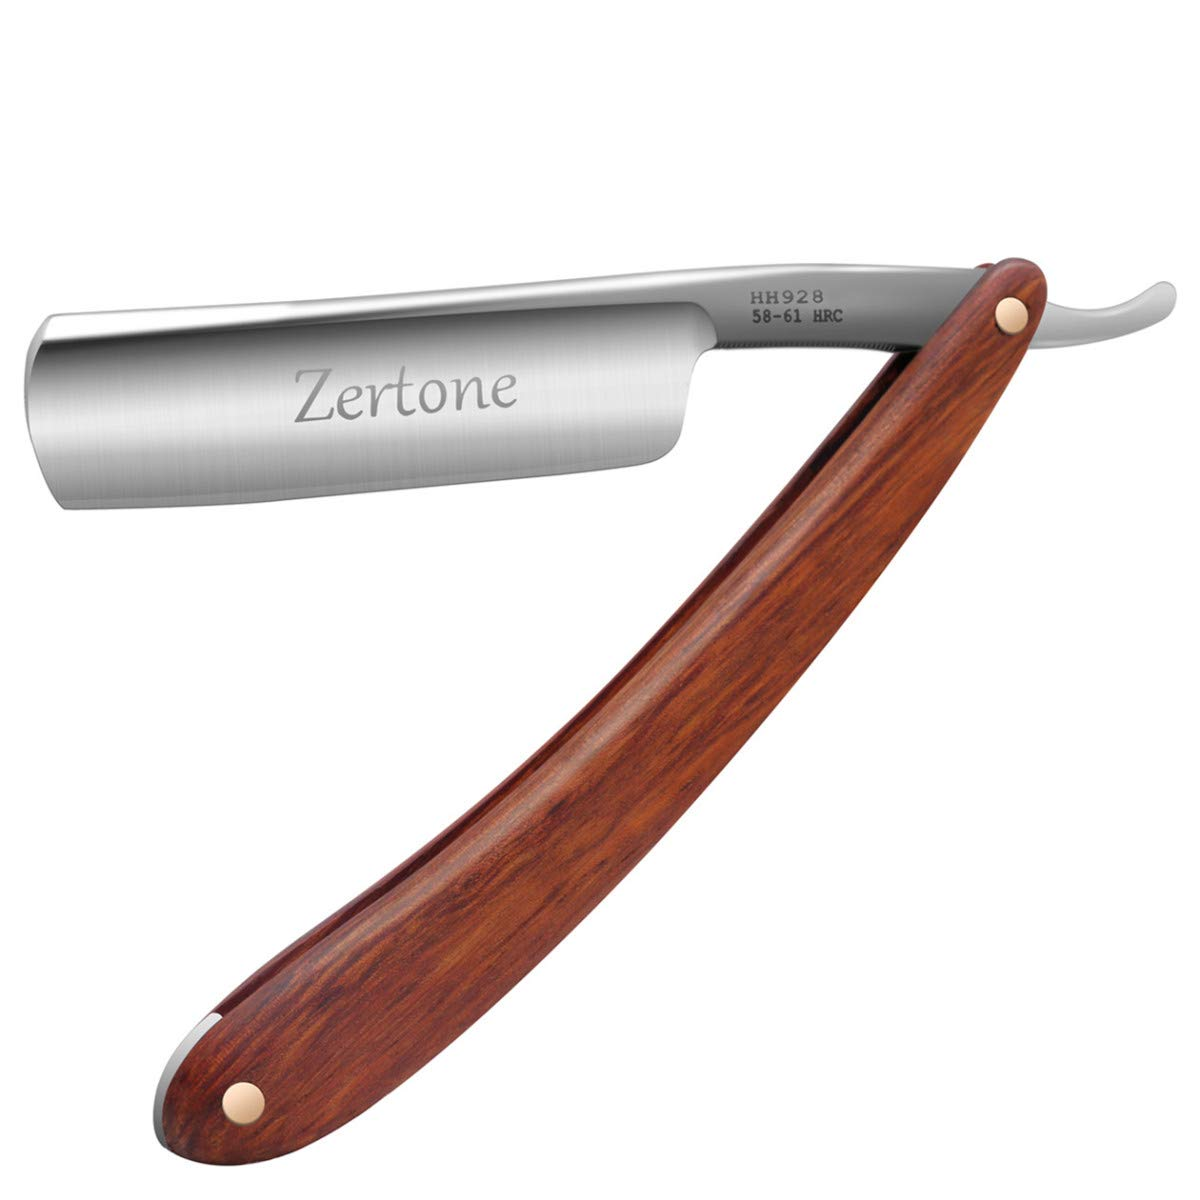 Straight Razor, Razor, Shaving Kit